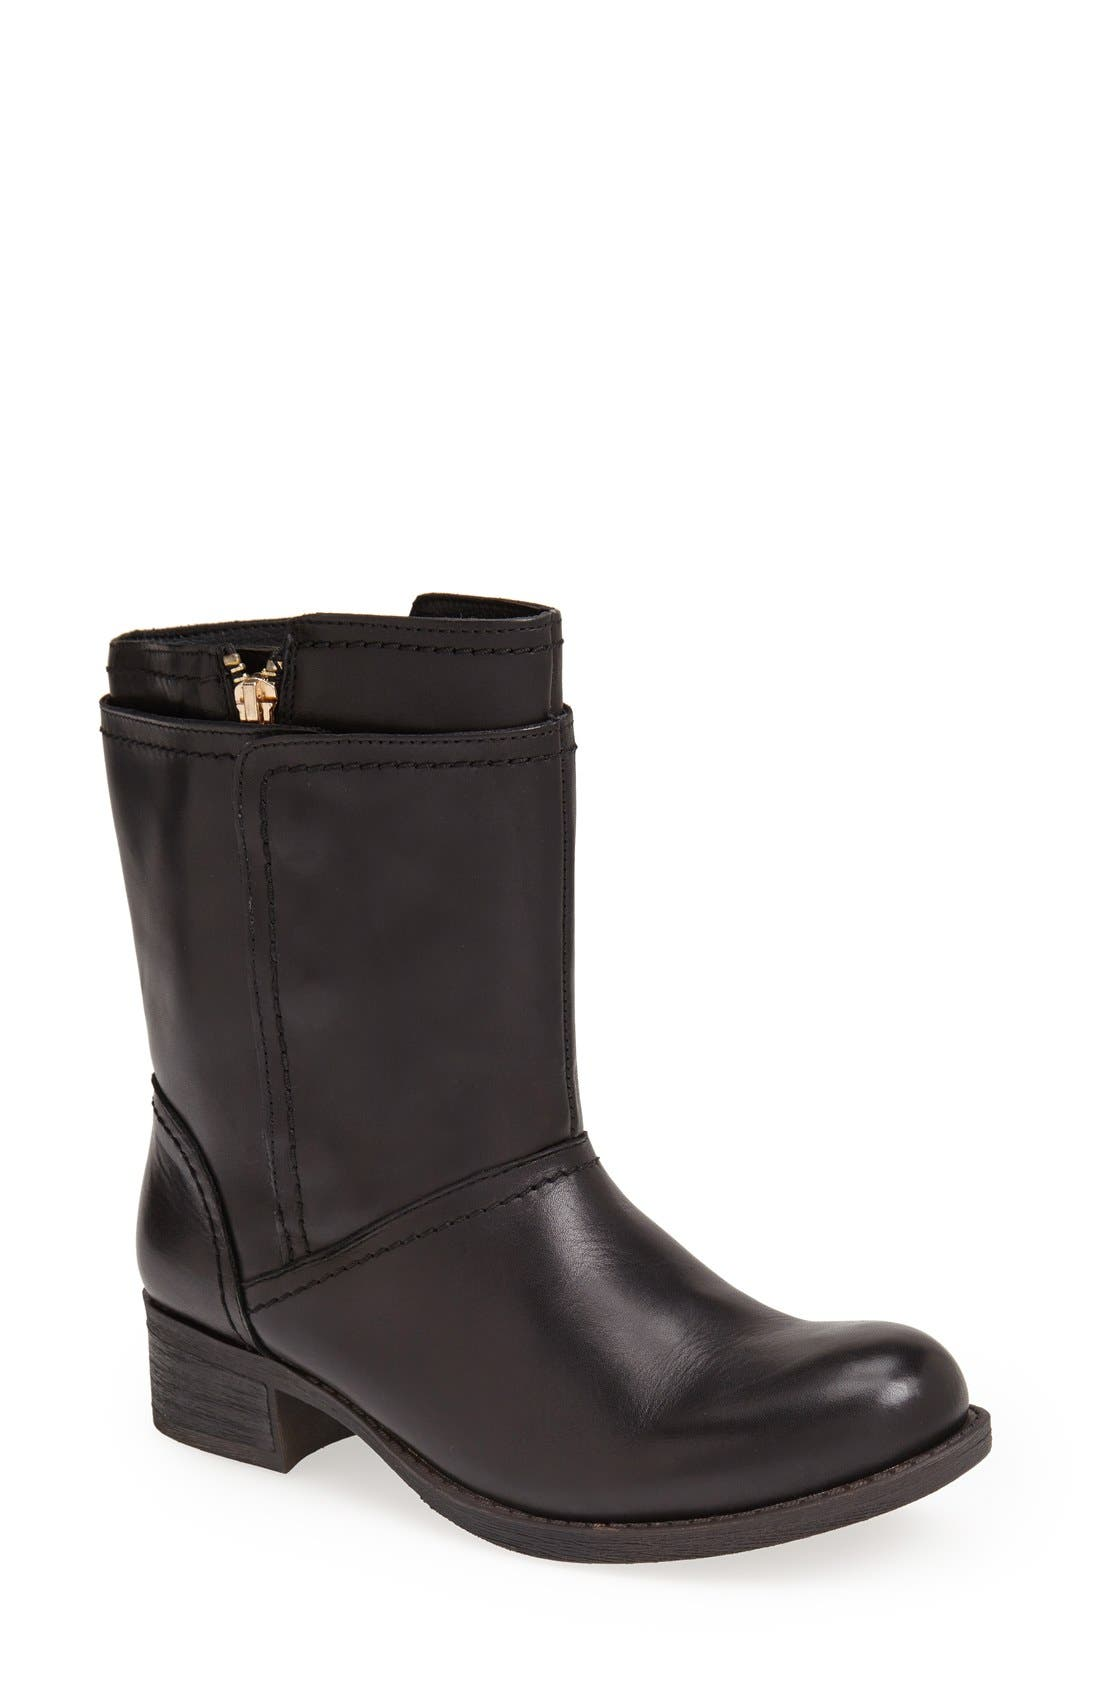 Main Image - BCBGeneration 'Everest' Leather Boot (Women)